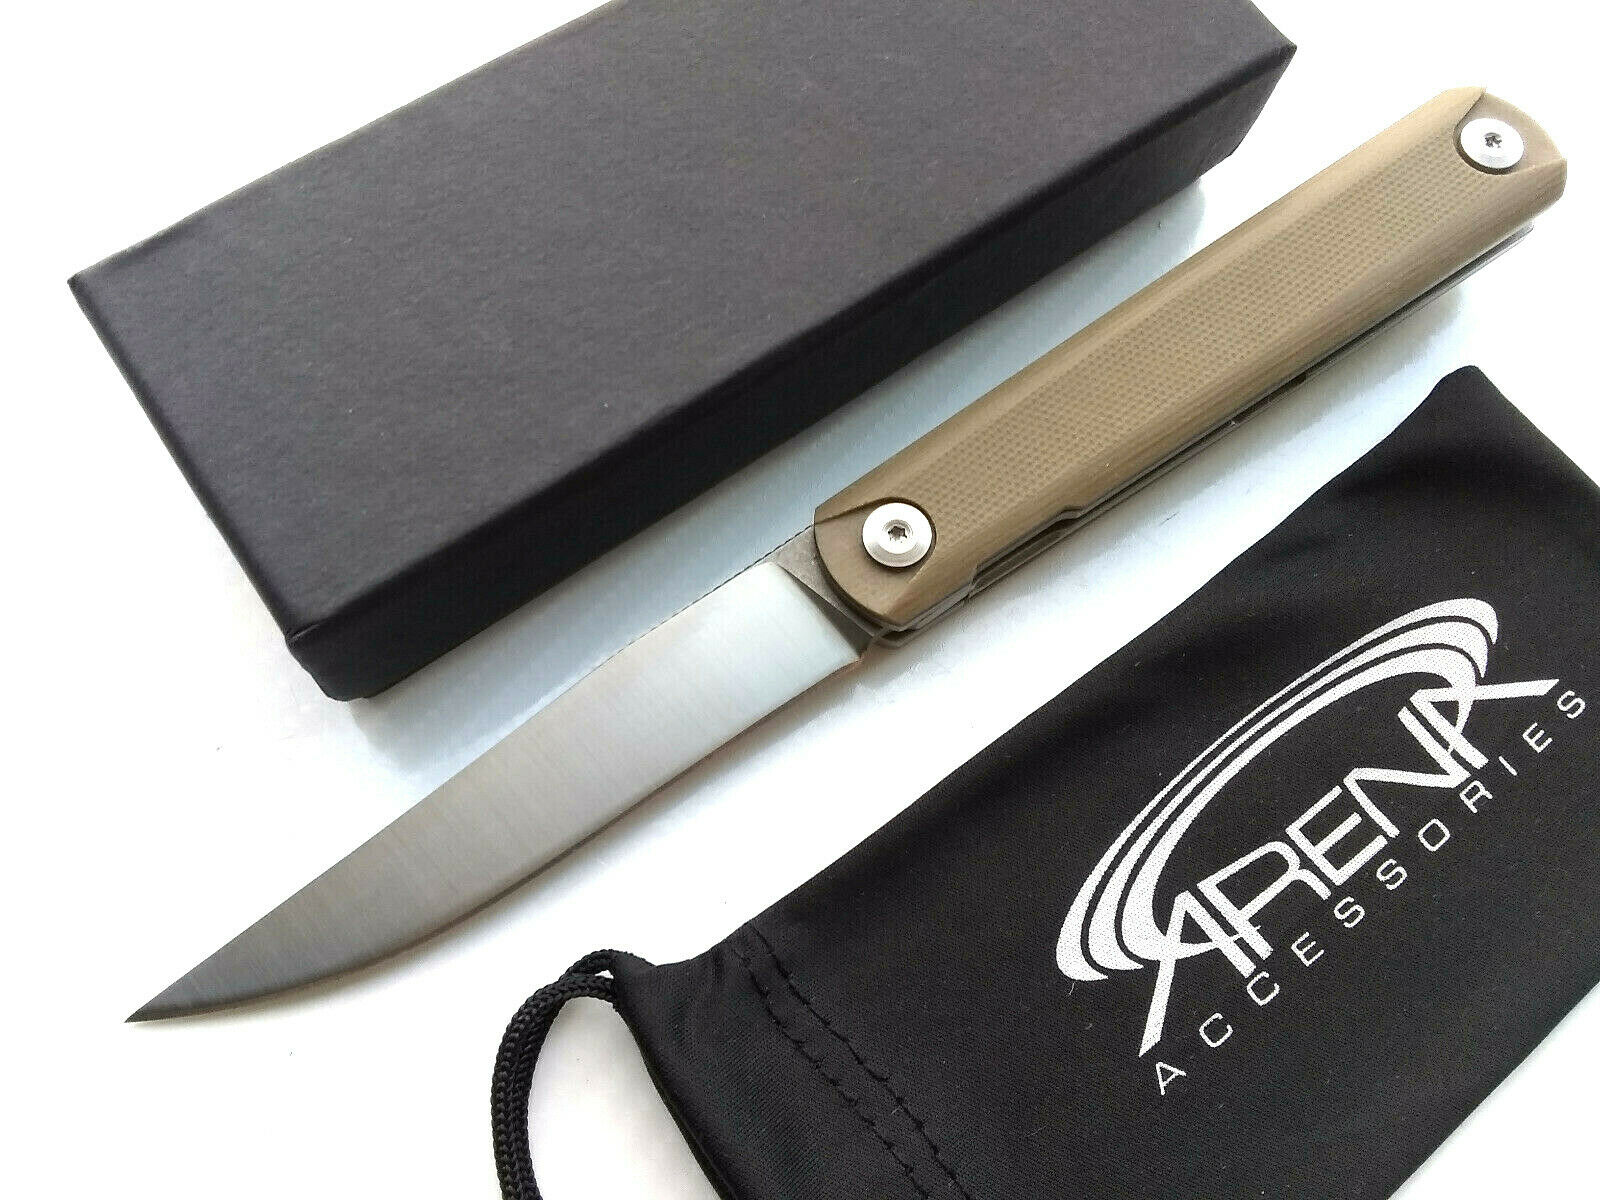 Ball Bearing Pivot Front Flipper Pocket Knife 9Cr18MoV Blade Tan G10 Handle EDC